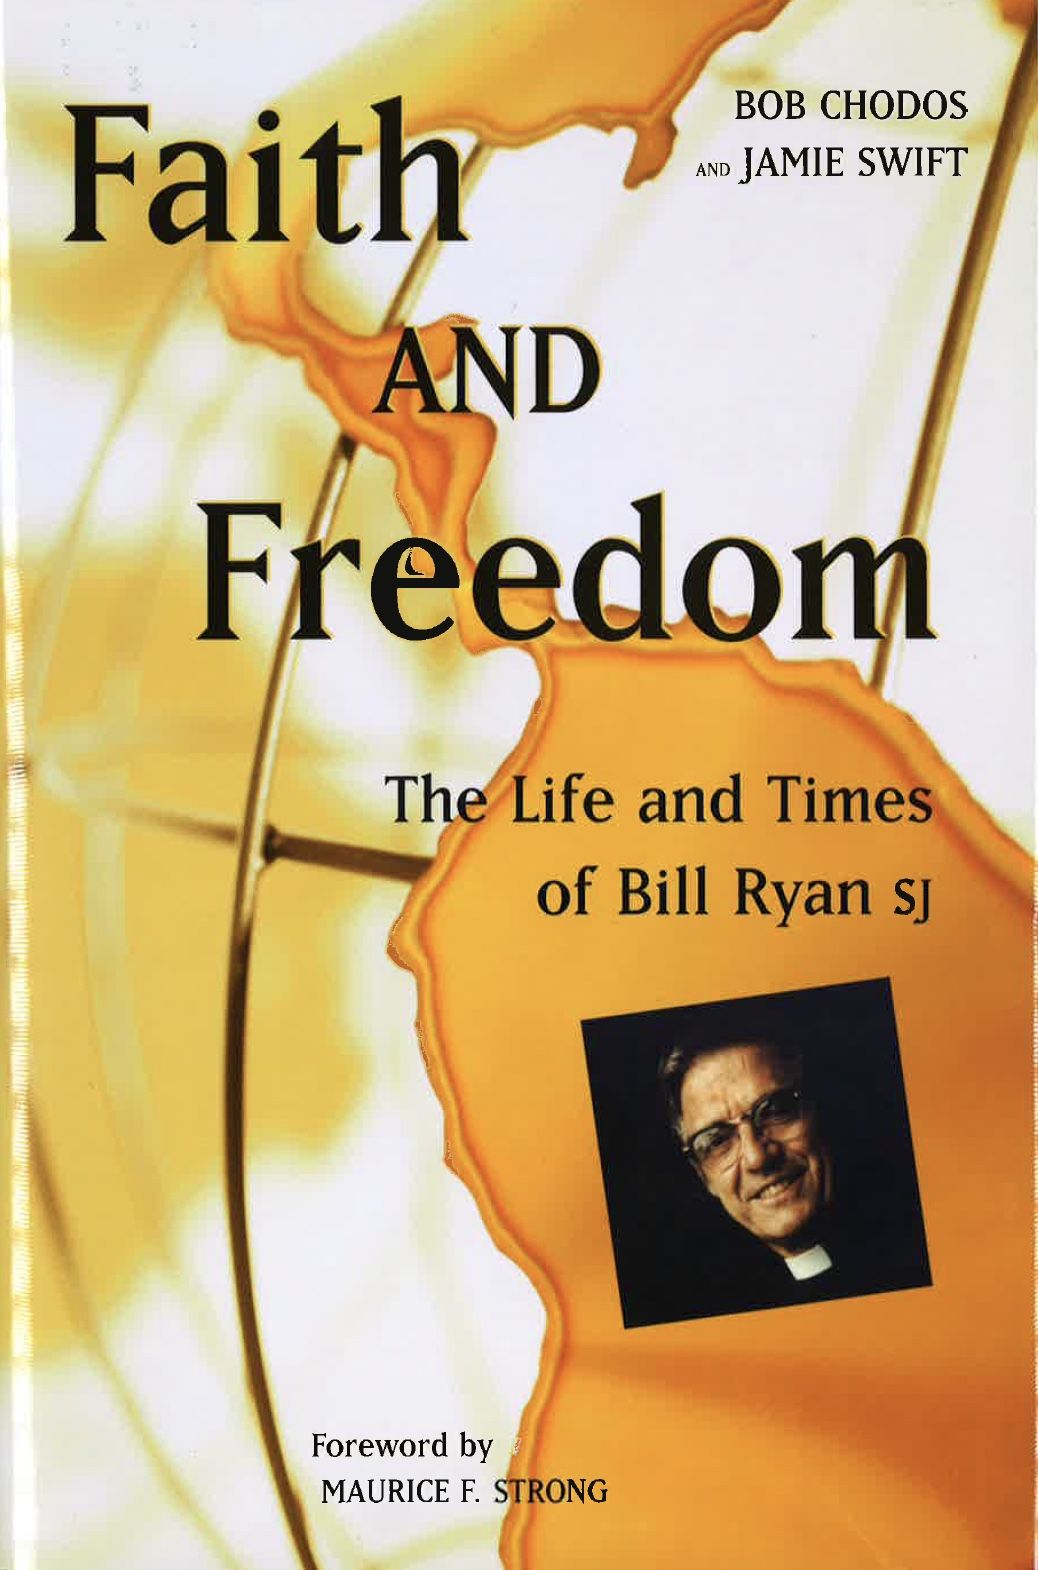 Faith and Freedom: The Life and Times of Bill Ryan sj Image